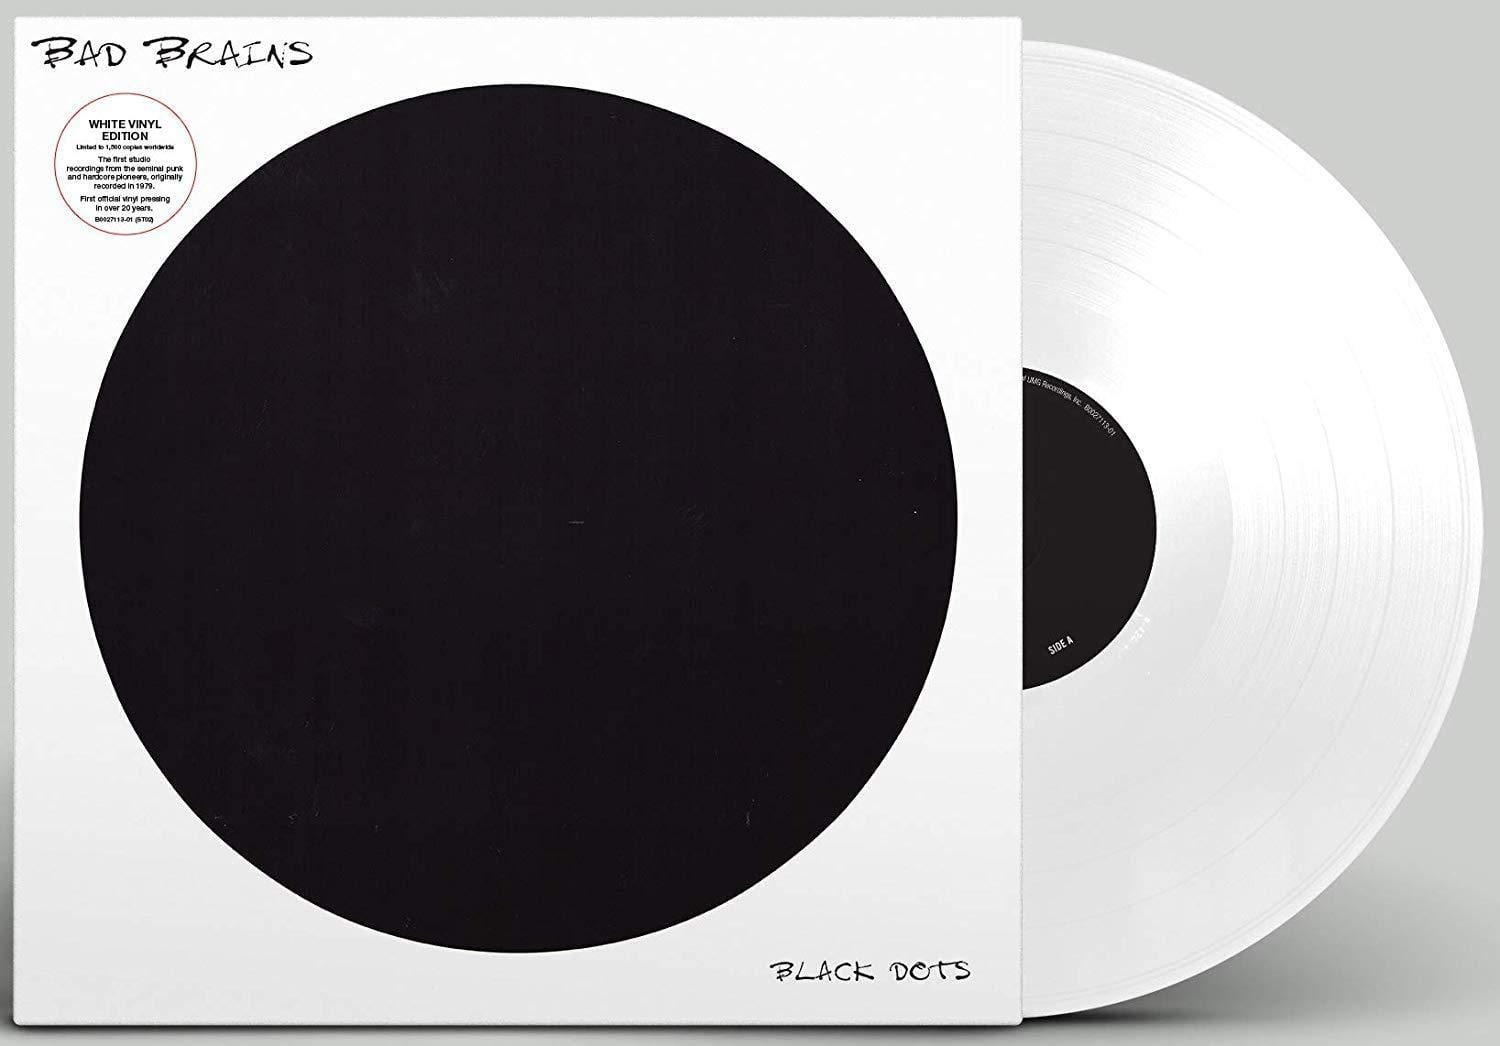 Bad Brains - Black Dots [LP] - Urban Vinyl | Records, Headphones, and more.